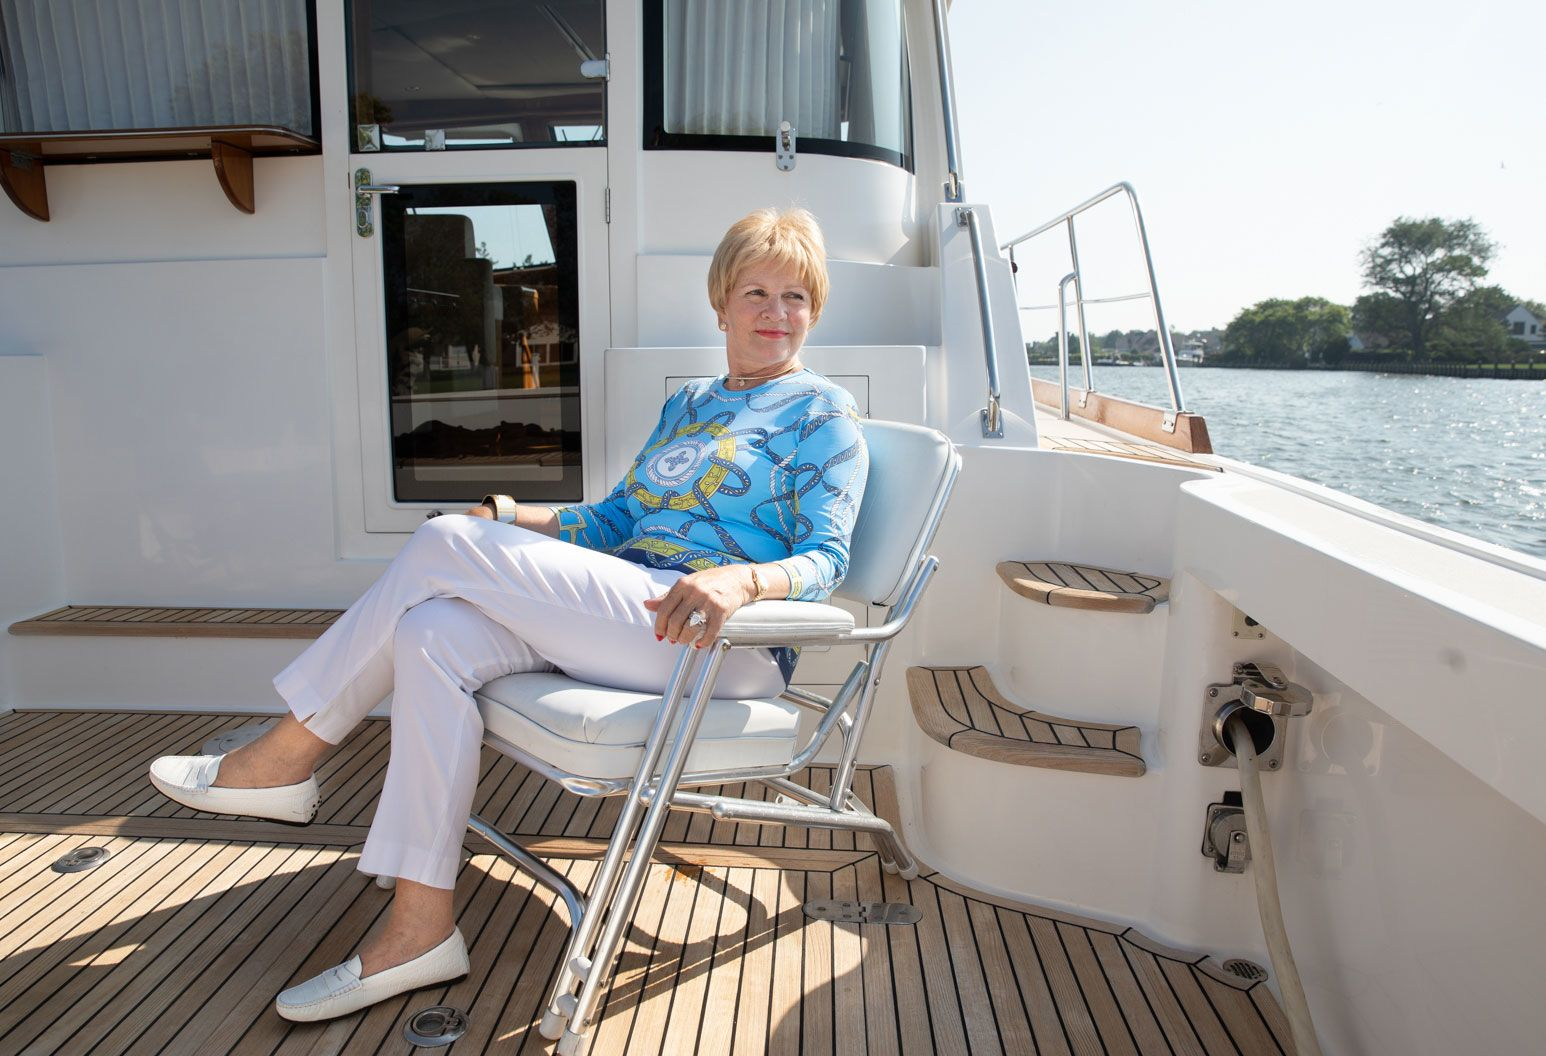 An elderly woman sits on on a chair from the deck of a private boat. She is wearing a nautical themed blue sweater and white pants. Smiling into the distance, she embraces the sunny day.